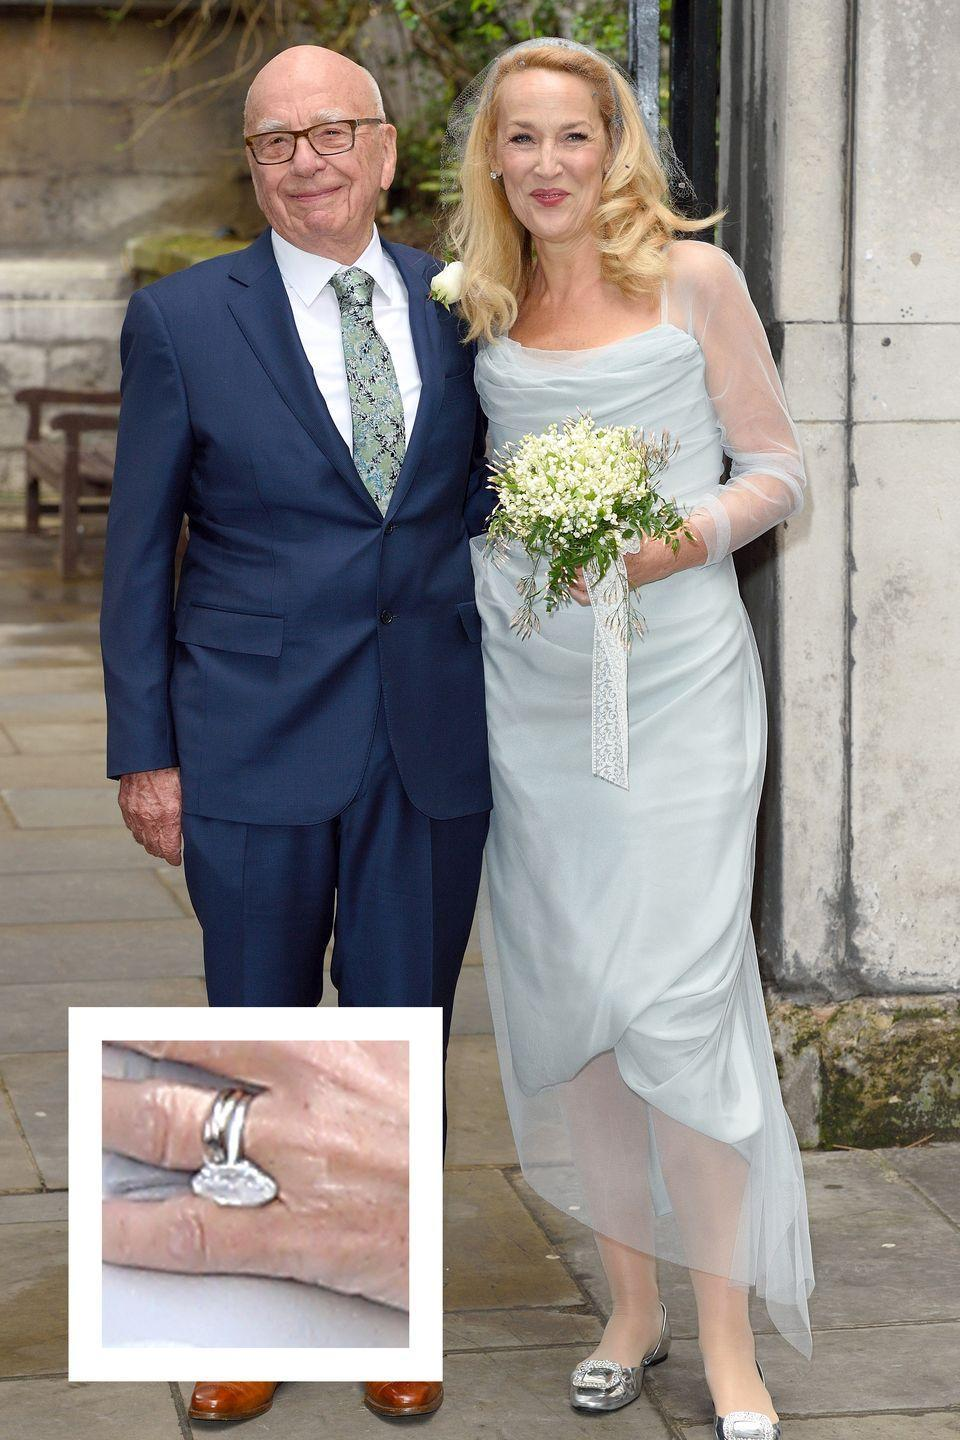 """<p>Hall and media tycoon Rupert Murdoch announced their engagement in January 2016. Hall's enormous ring is a marquise-shaped diamond on a platinum band, <a href=""""http://www.instyle.com/news/jerry-hall-engagement-ring-rupert-murdoch-photo"""" rel=""""nofollow noopener"""" target=""""_blank"""" data-ylk=""""slk:InStyle reports"""" class=""""link rapid-noclick-resp""""><em>InStyle </em>reports</a>. The center stone is <a href=""""http://www.dailymail.co.uk/femail/article-3477041/Rupert-s-lucky-man-Newlywed-Jerry-Hall-59-flashes-HUGE-engagement-ring-models-striking-magazine-spread-shot-Chanel-designer-Karl-Lagerfeld.html"""" rel=""""nofollow noopener"""" target=""""_blank"""" data-ylk=""""slk:estimated to be"""" class=""""link rapid-noclick-resp"""">estimated to be</a> a whopping 20 carats.</p>"""